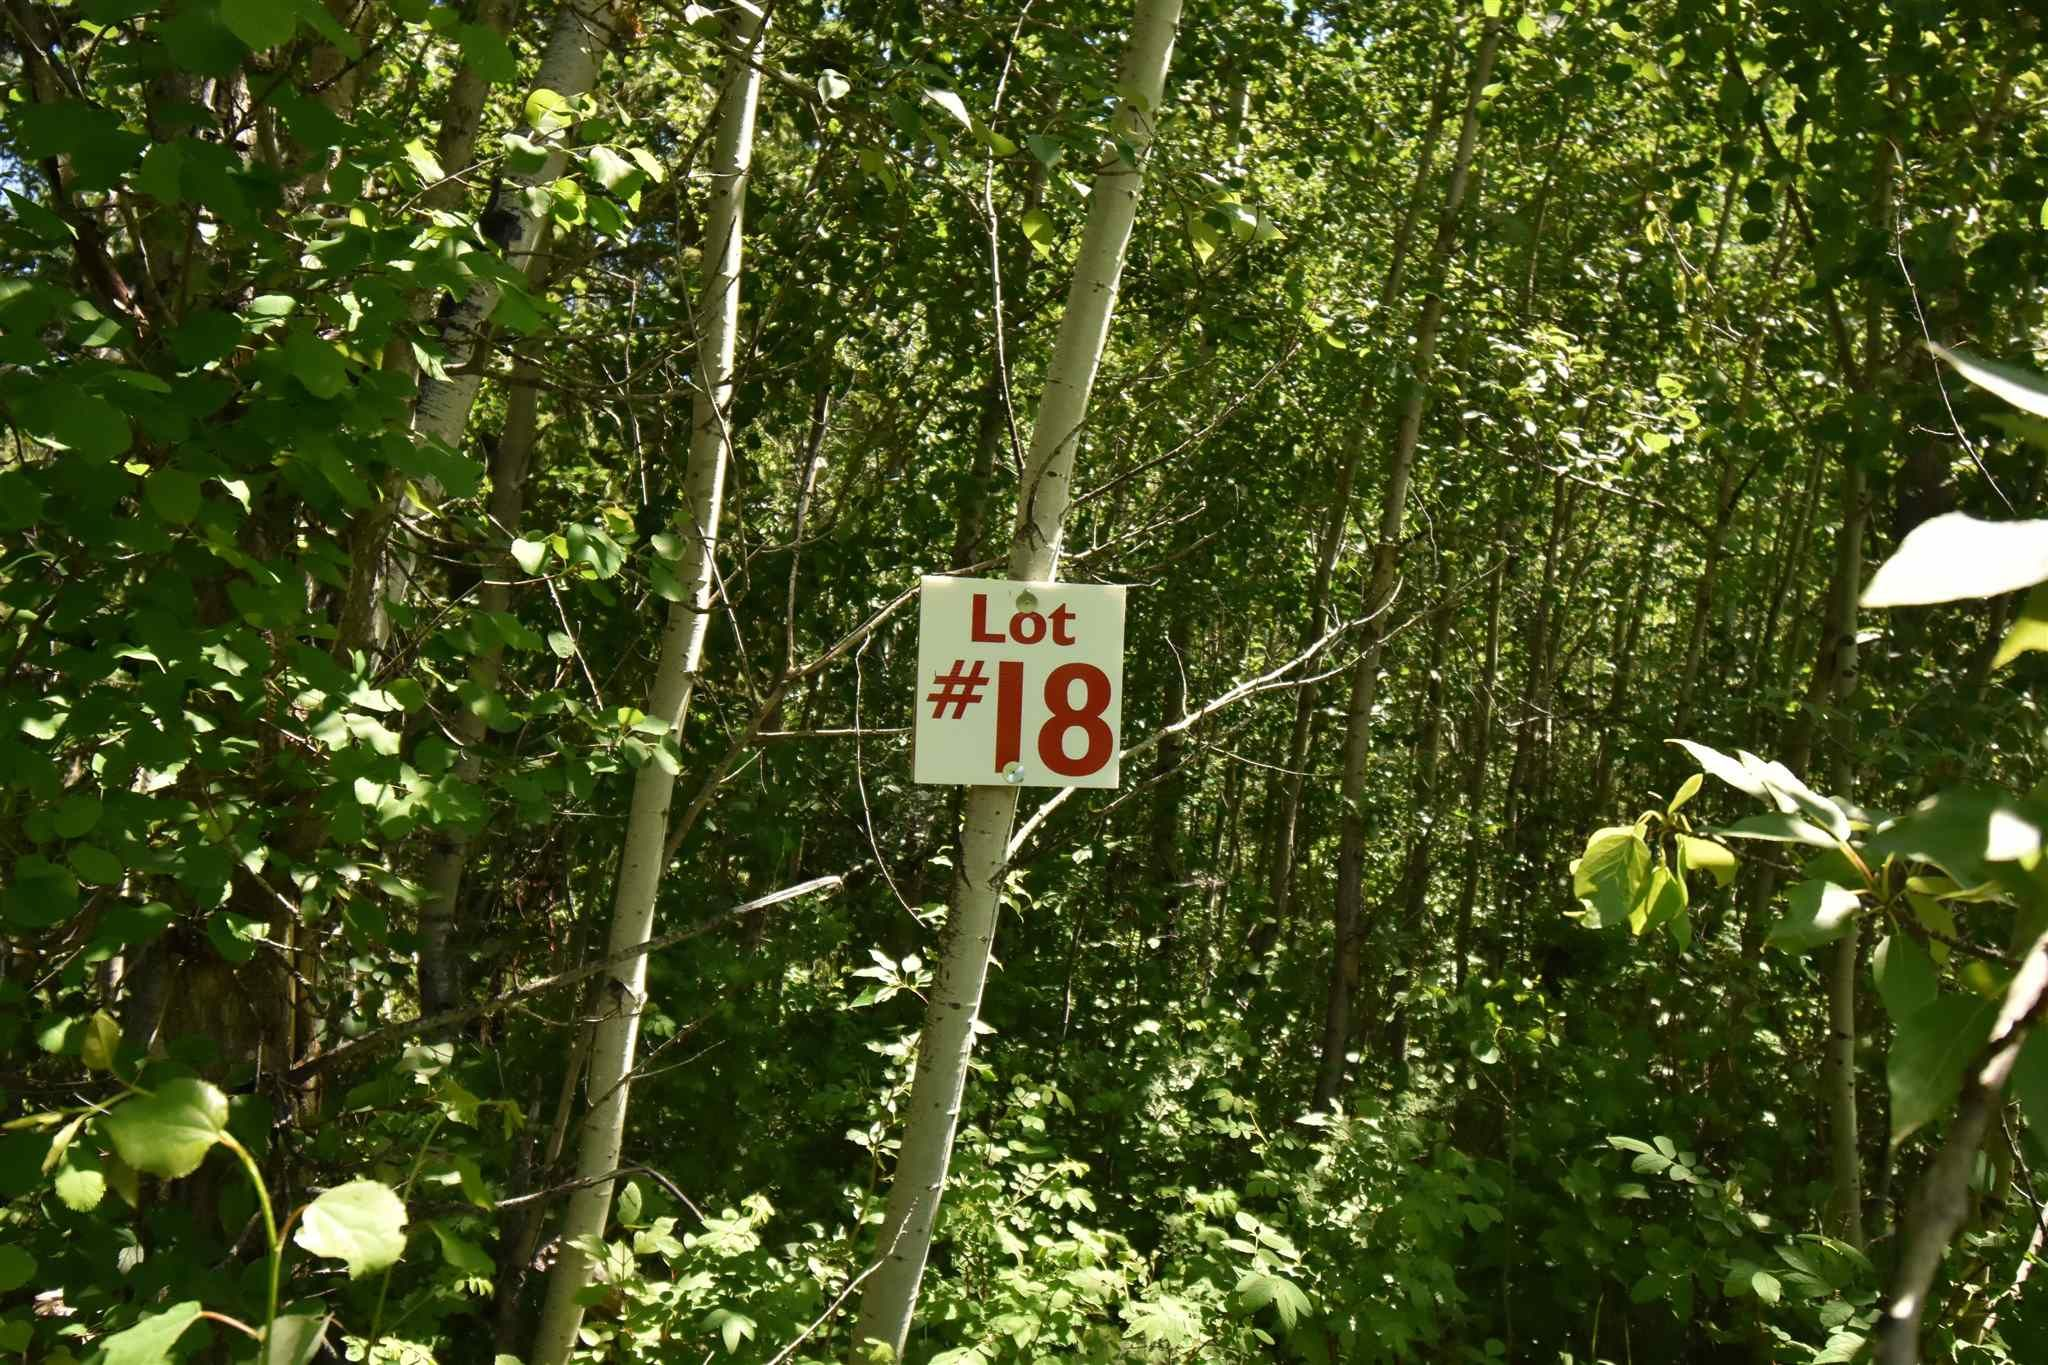 Main Photo: 18 Village West: Rural Wetaskiwin County Rural Land/Vacant Lot for sale : MLS®# E4251065